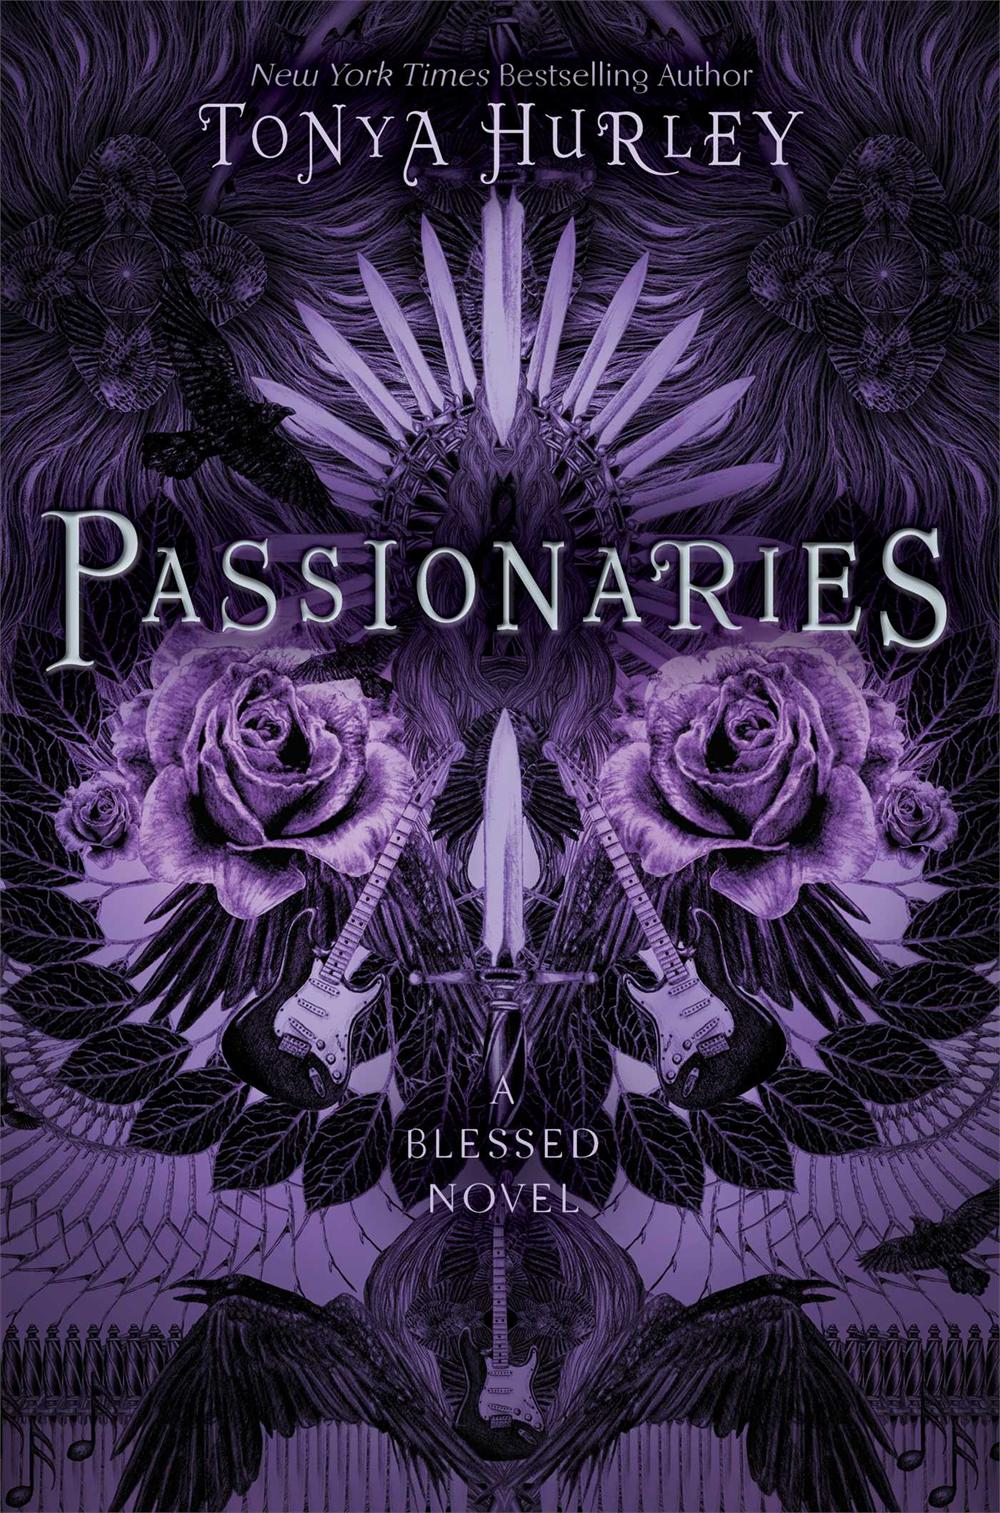 Book Launch: Passionaries by Tonya Hurley, with Gayle Forman